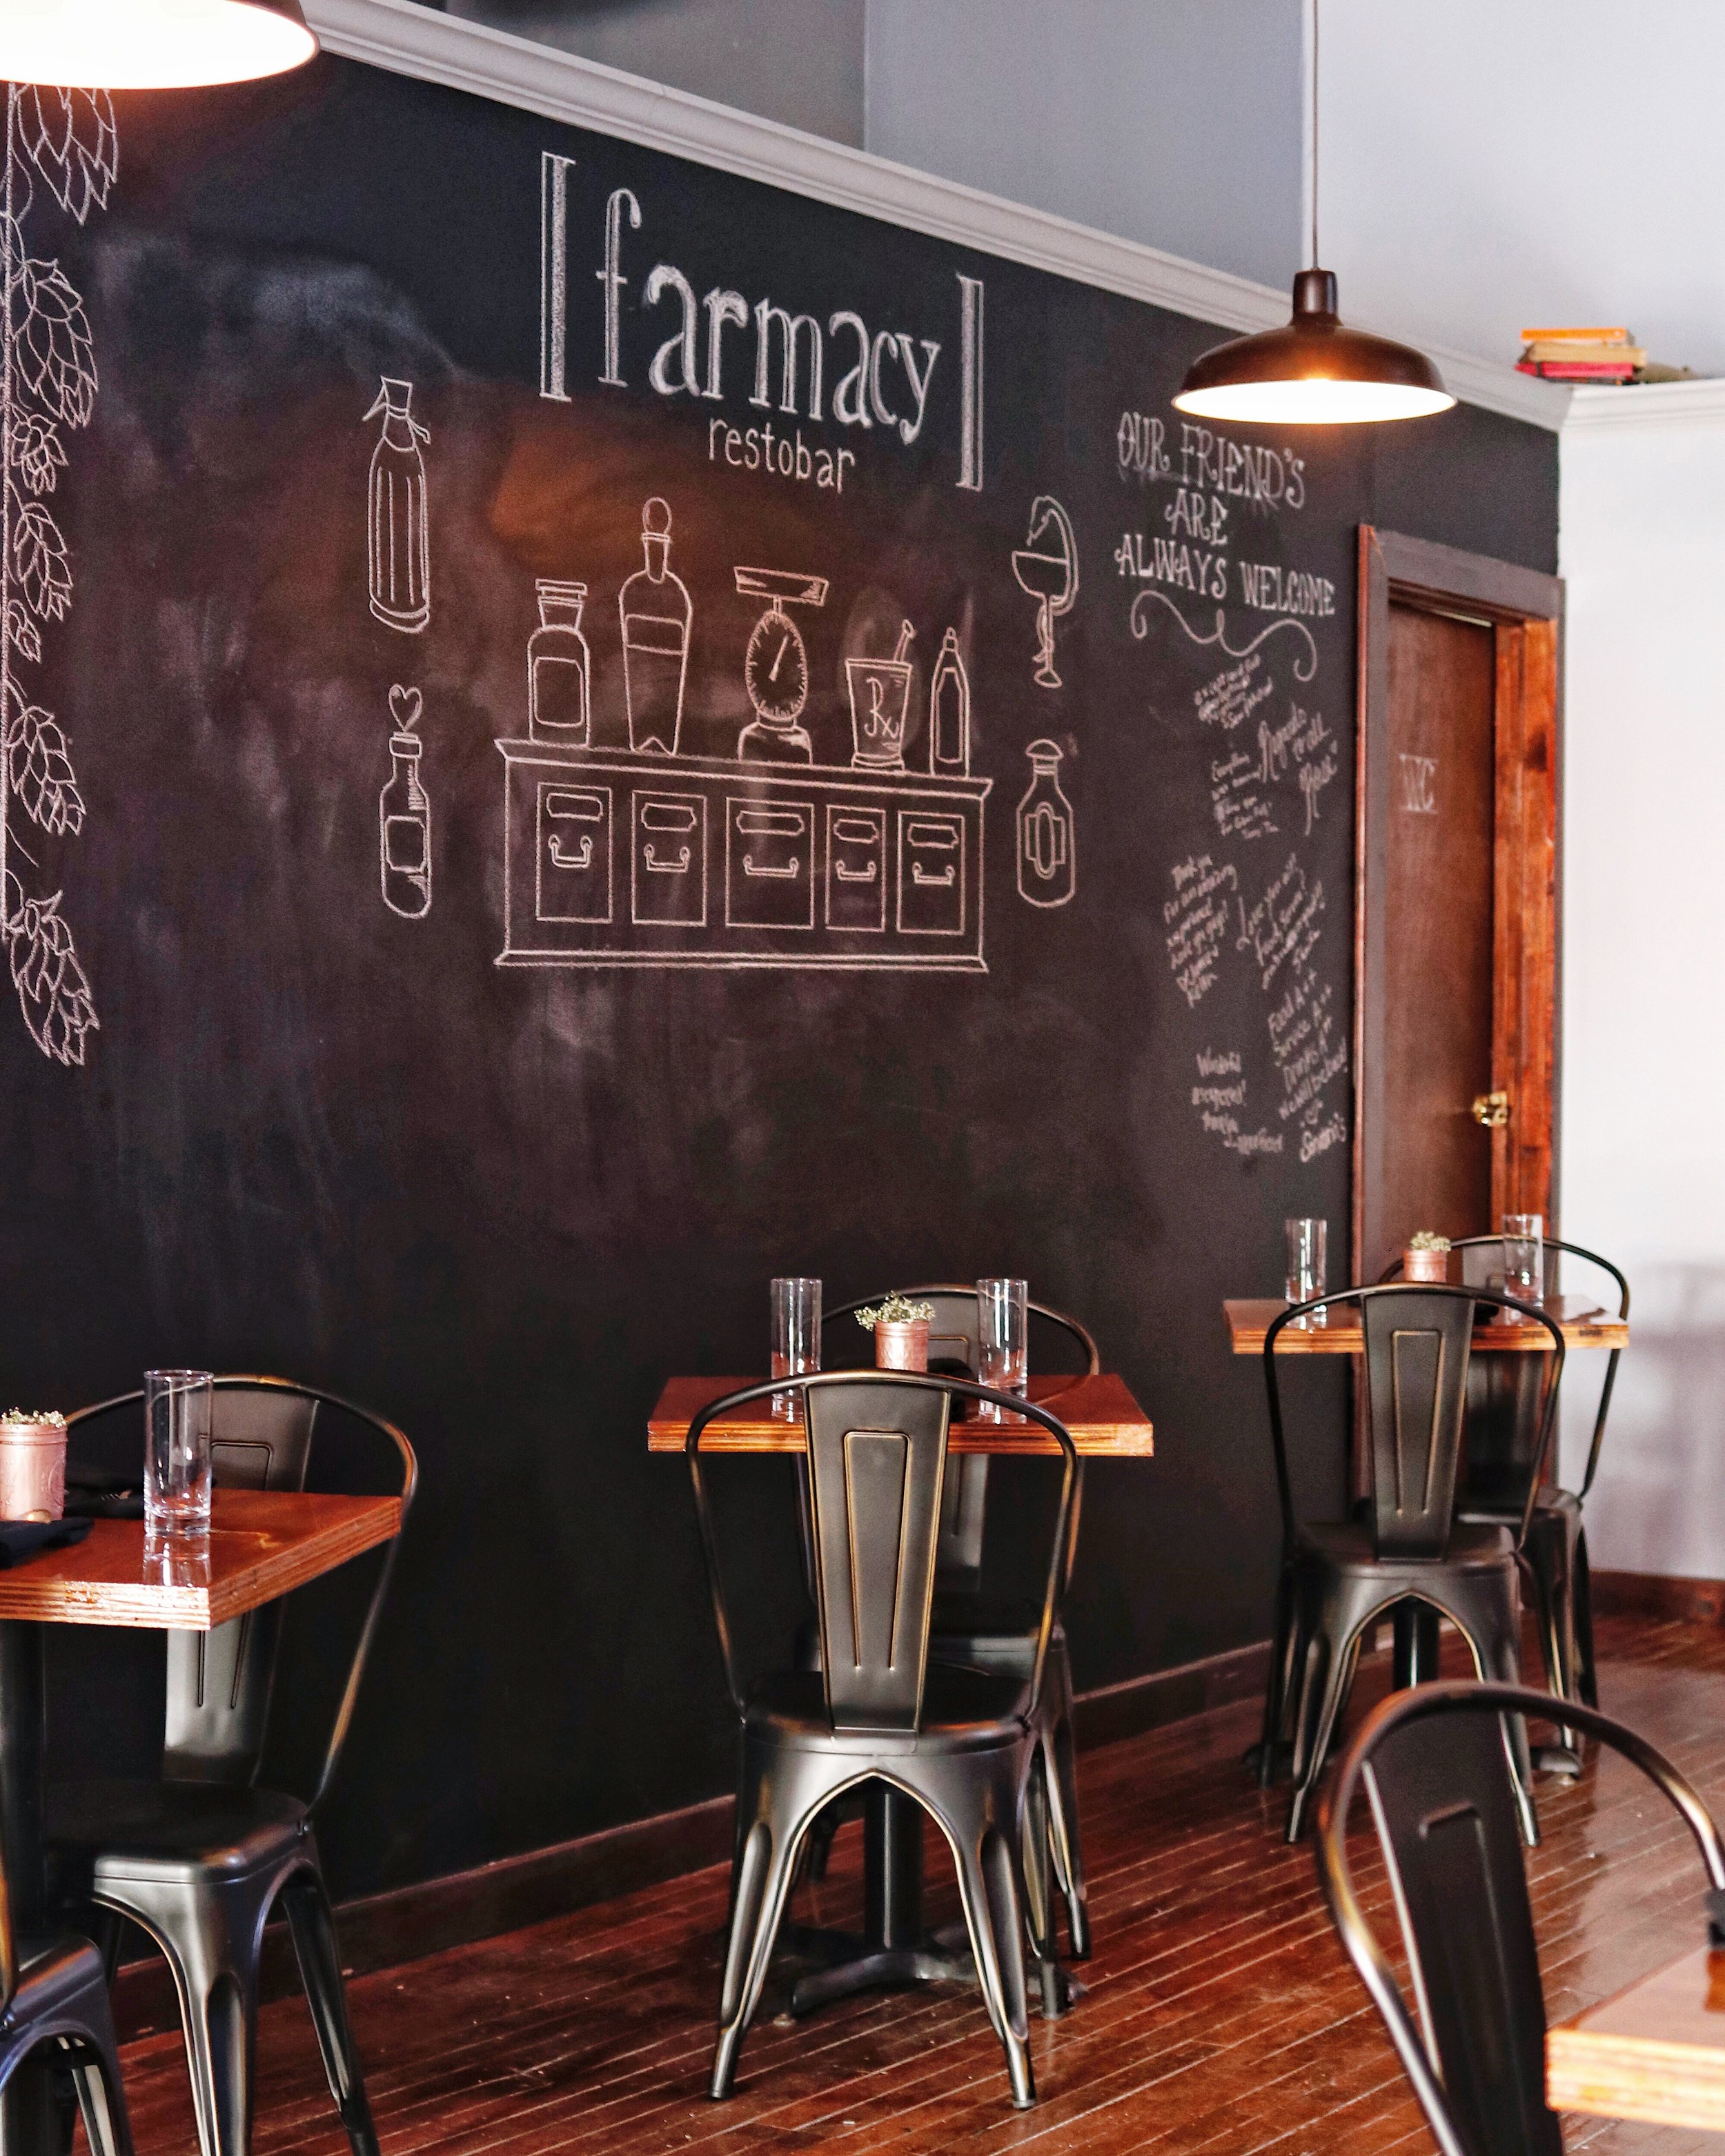 farmacy glens falls ny restaurants